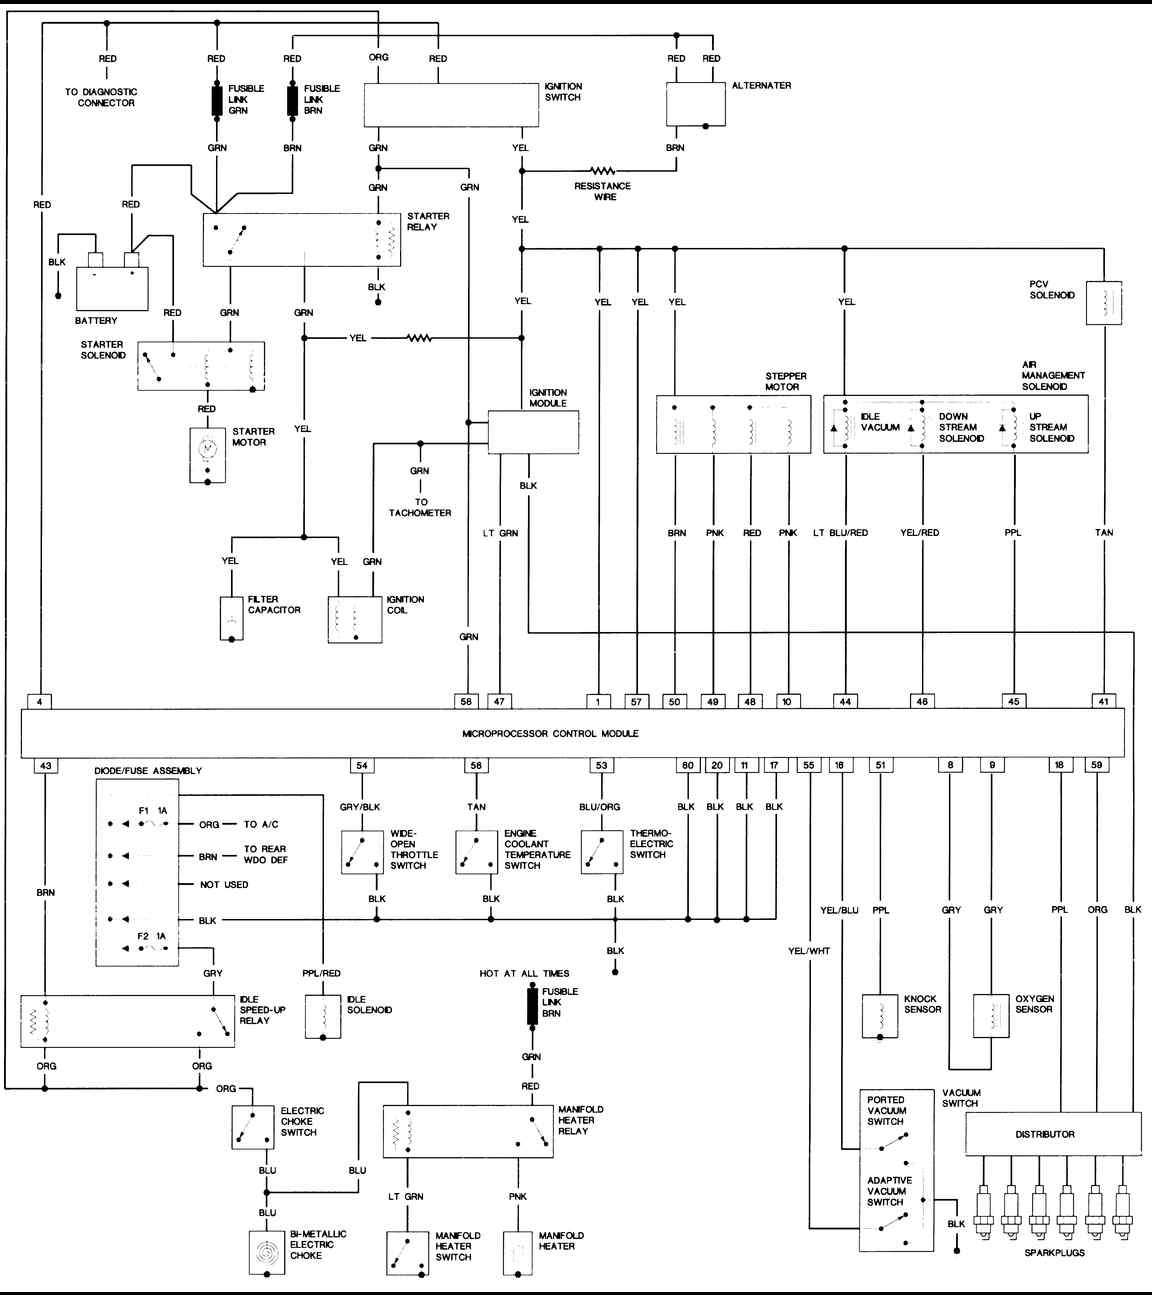 1987 jeep wrangler 4.2L engine 1987 jeep wrangler 4 2l engine(large) freeautomechanic 2007 jeep wrangler wiring diagram at gsmportal.co